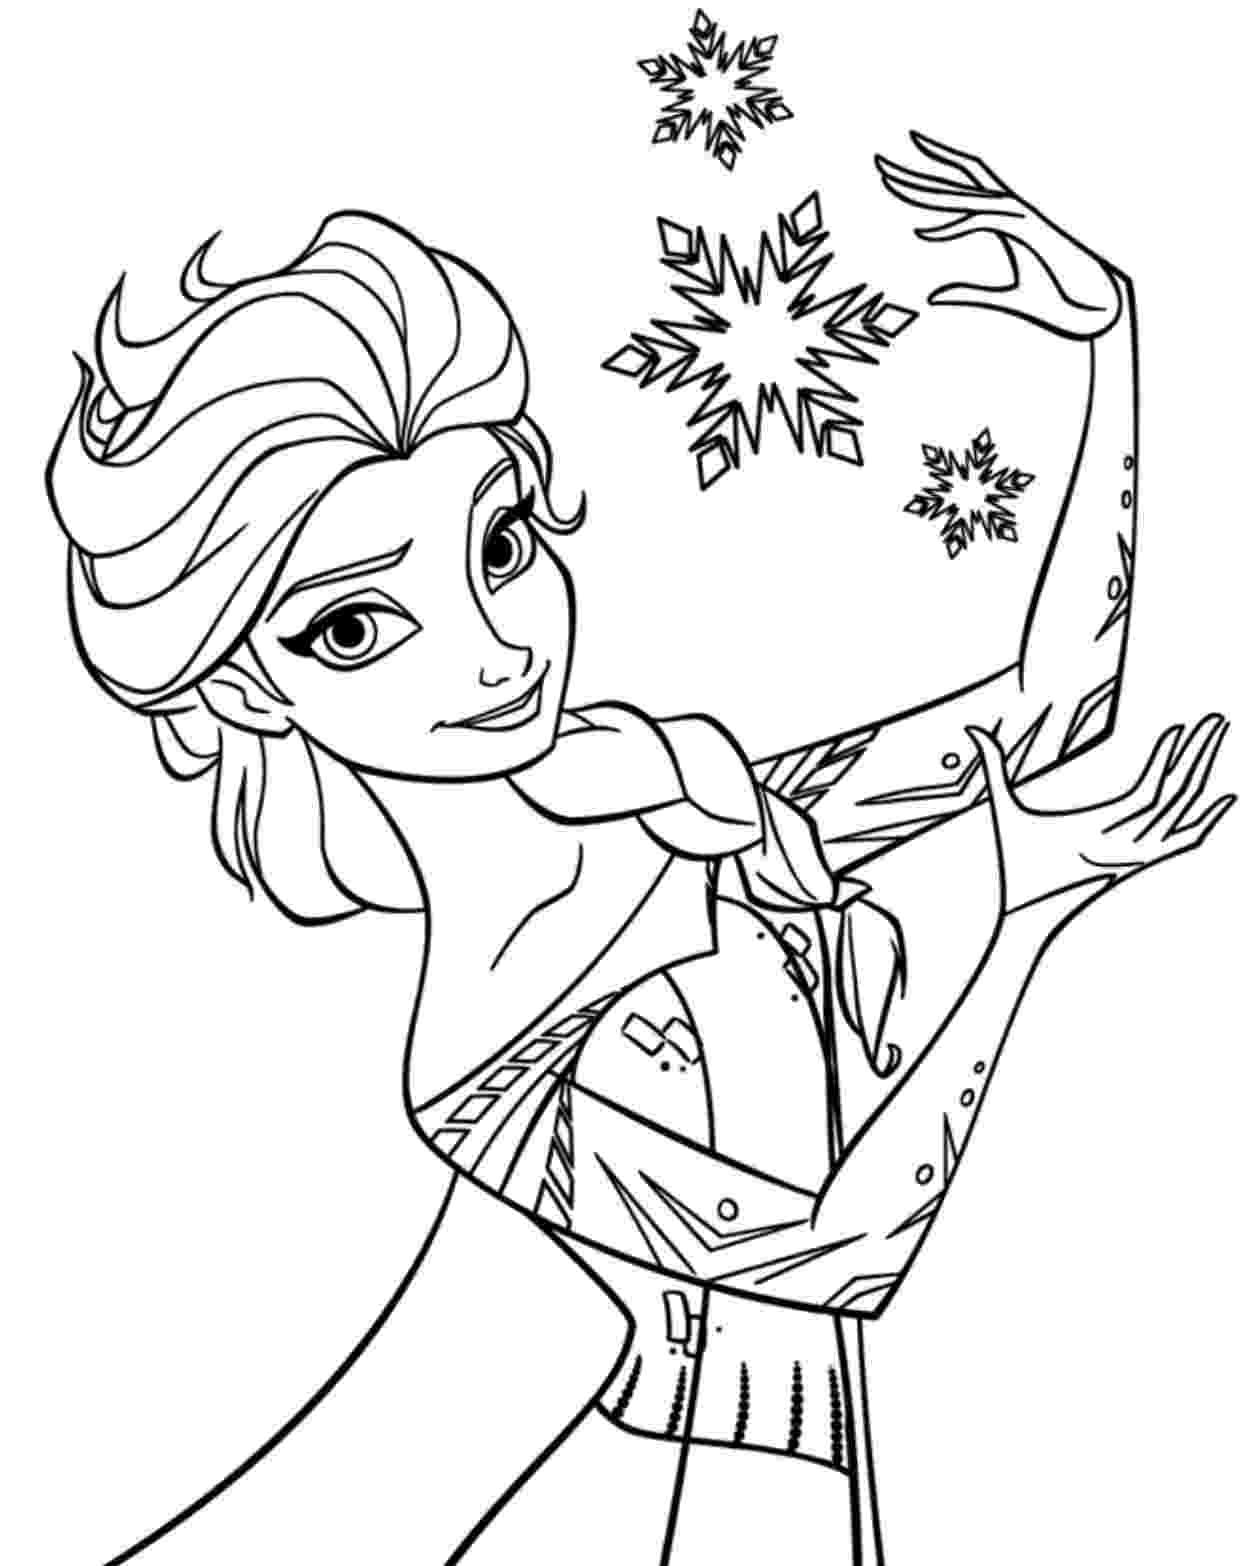 free coloring pages for teenagers bunny coloring pages best coloring pages for kids teenagers for free coloring pages